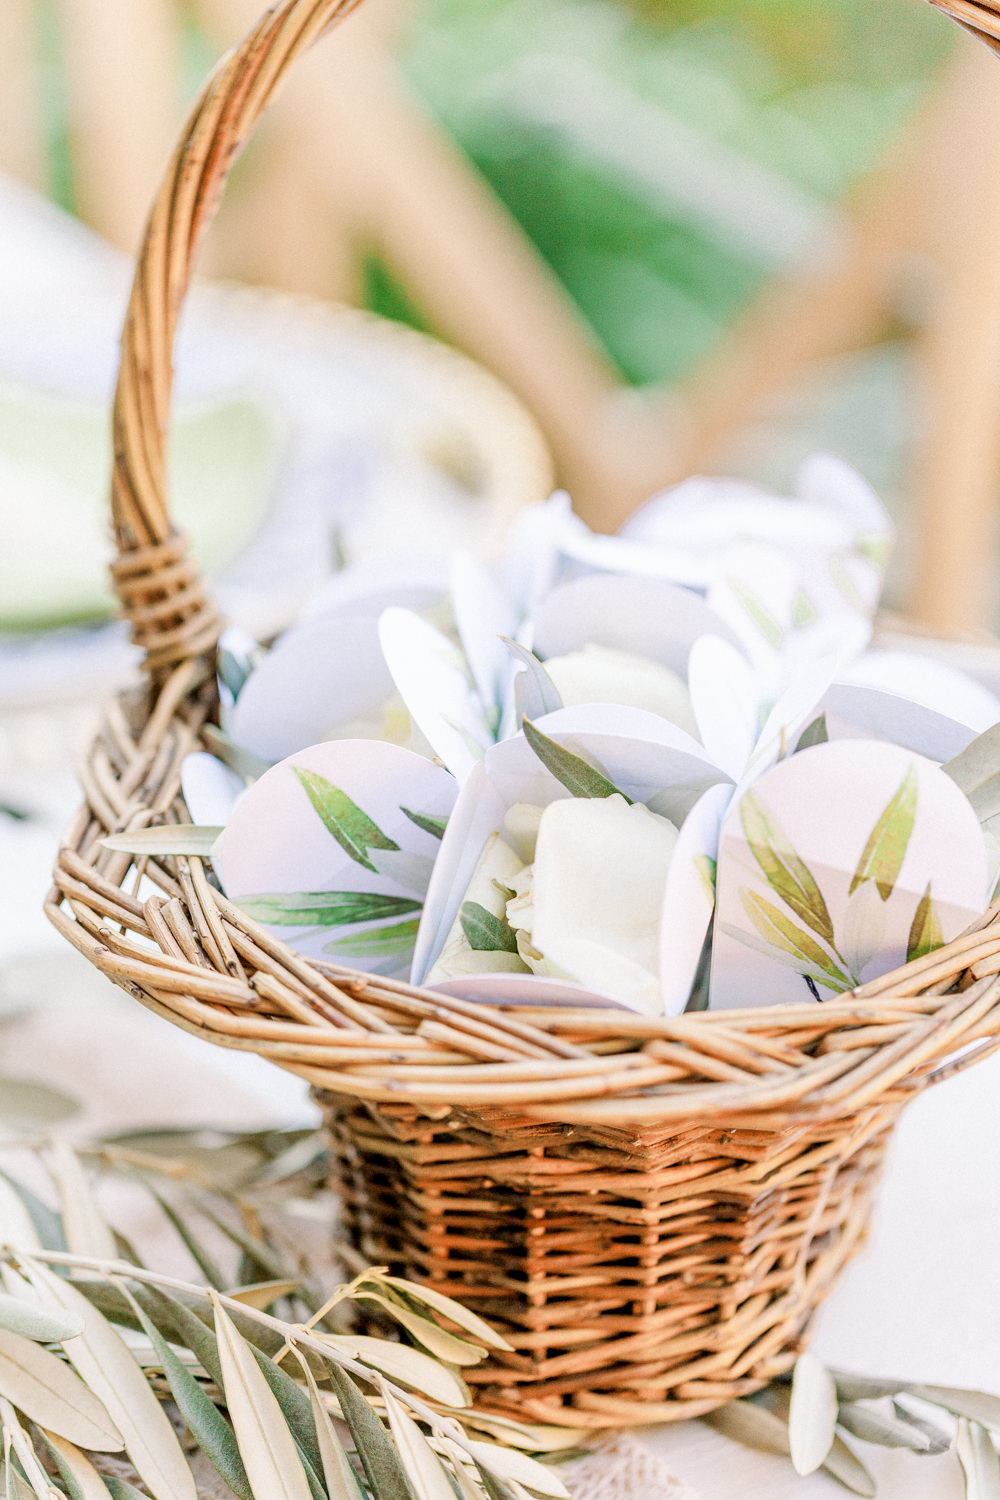 Confetti Cones Basket Romantic Tuscany Wedding Ideas Sonya Lalla Photography